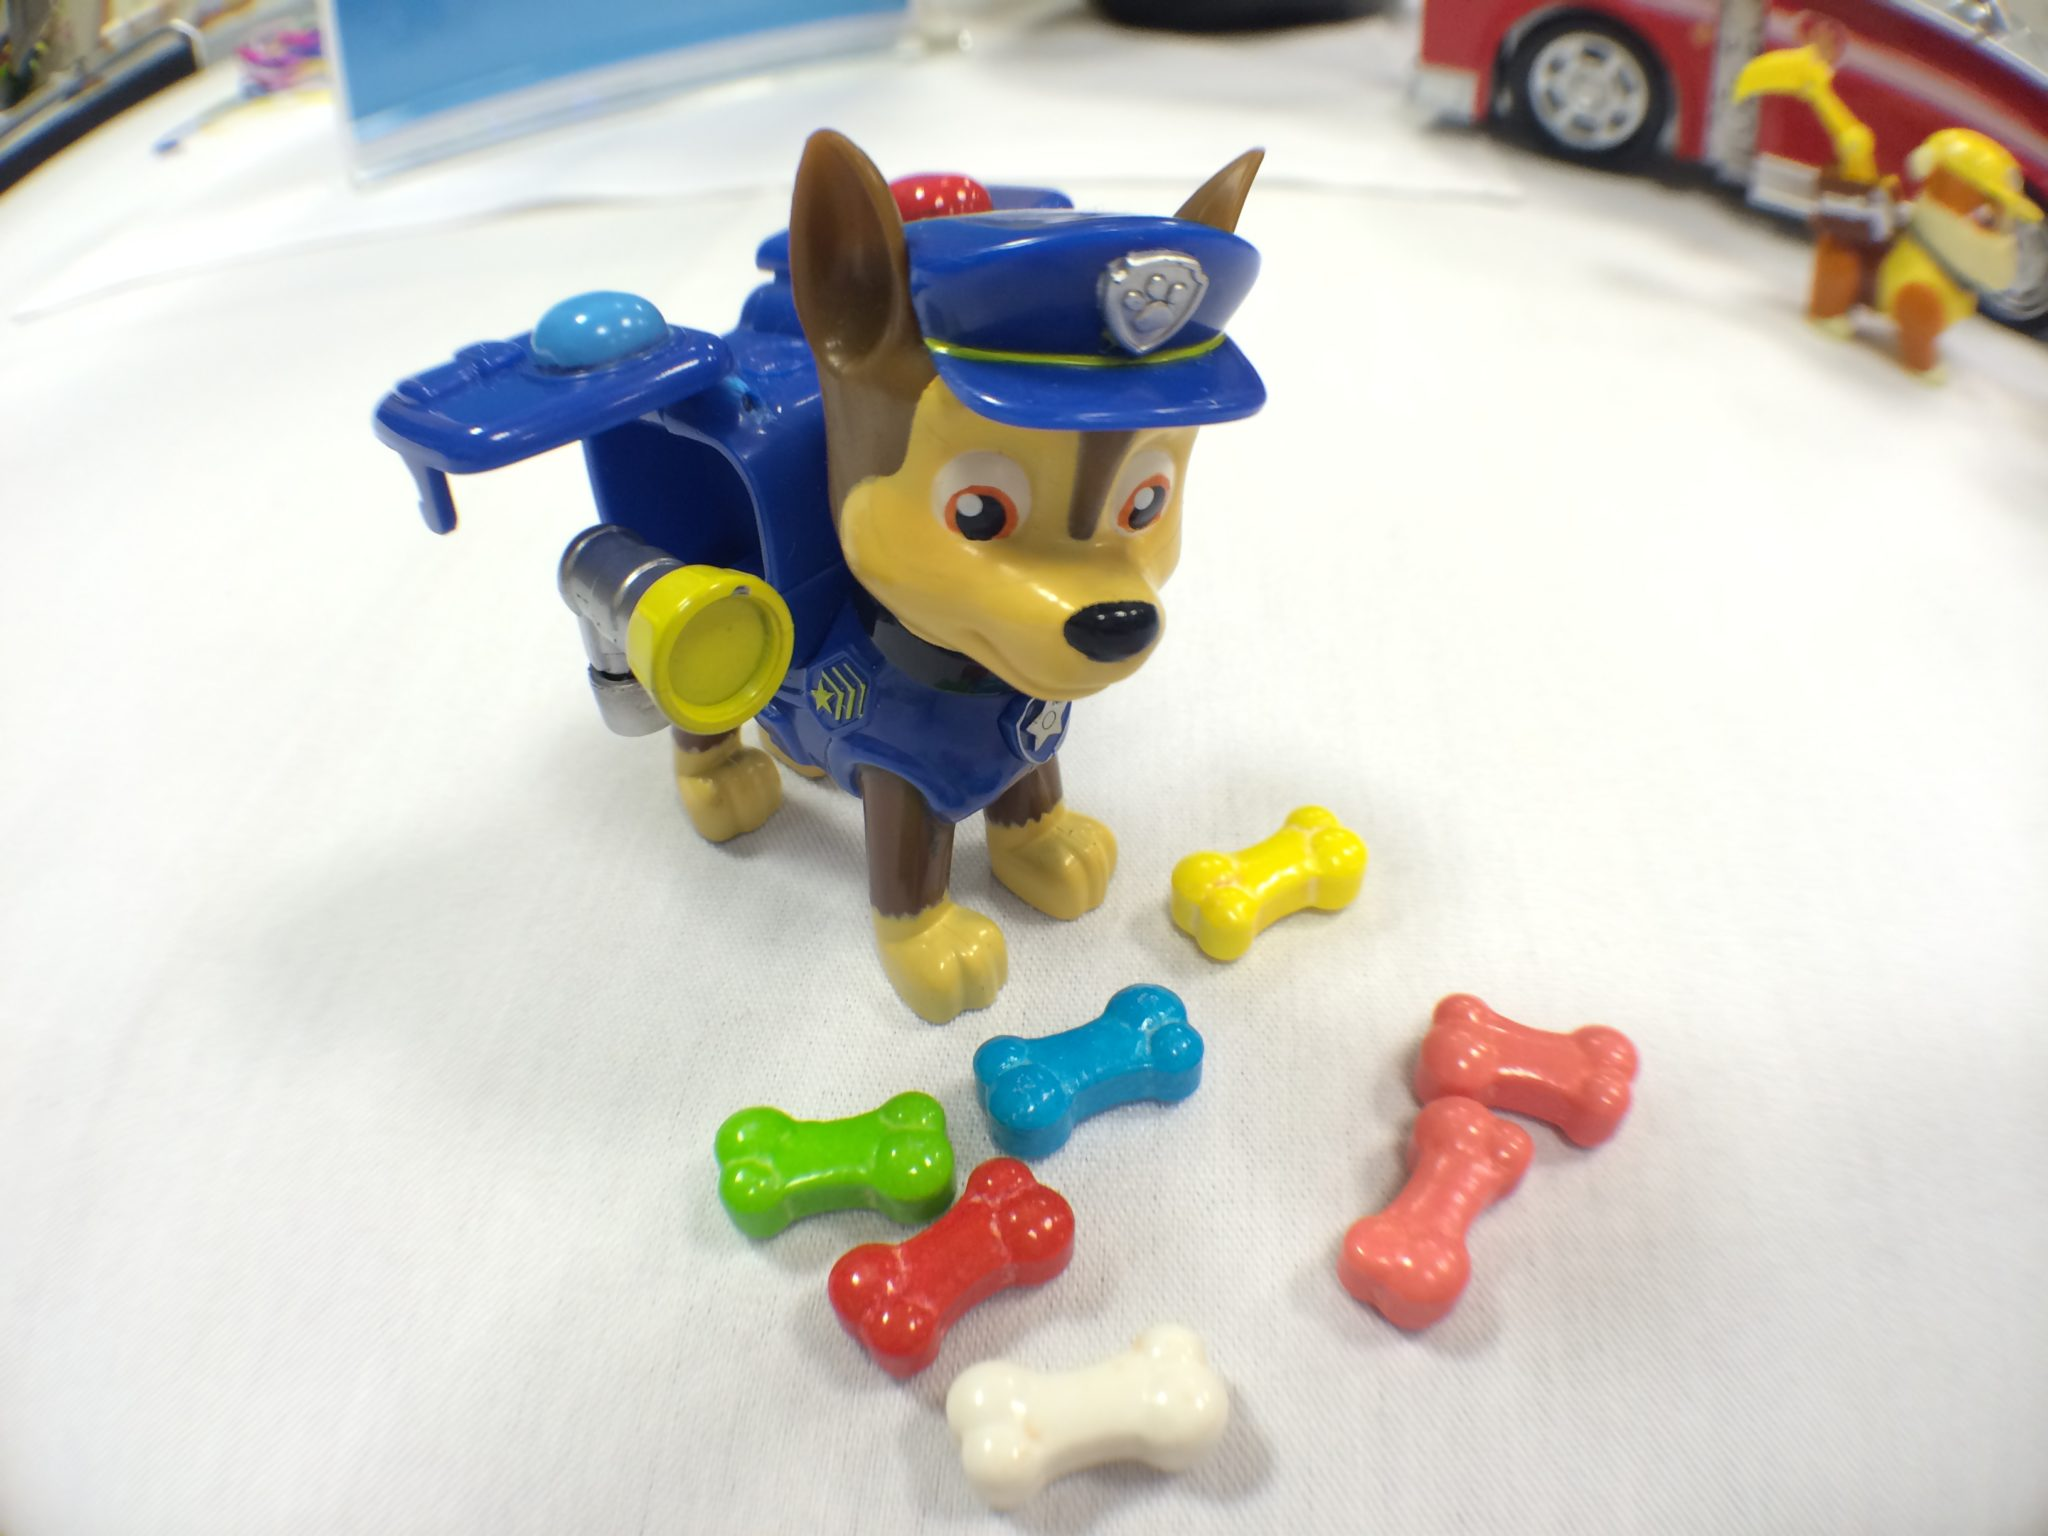 Chase PAW Patrol Toy